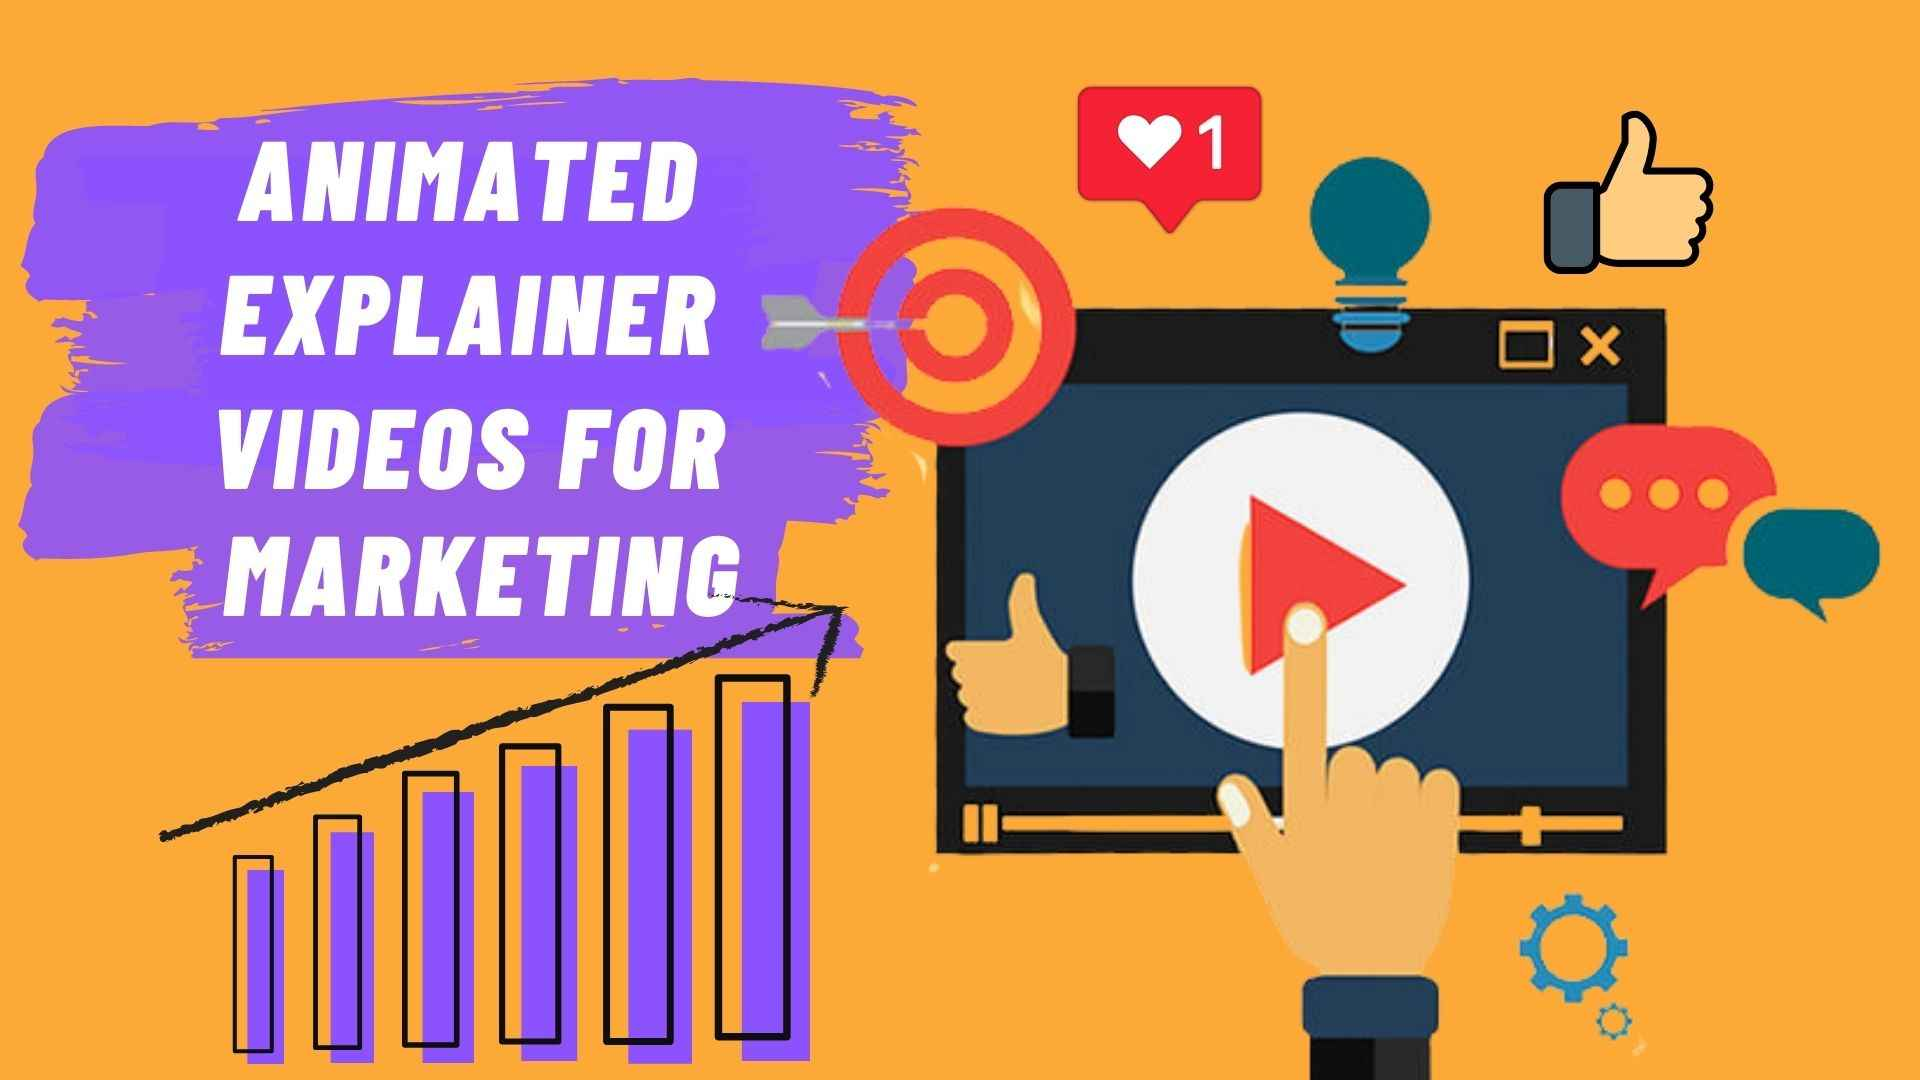 Animated explainer videos for Marketing